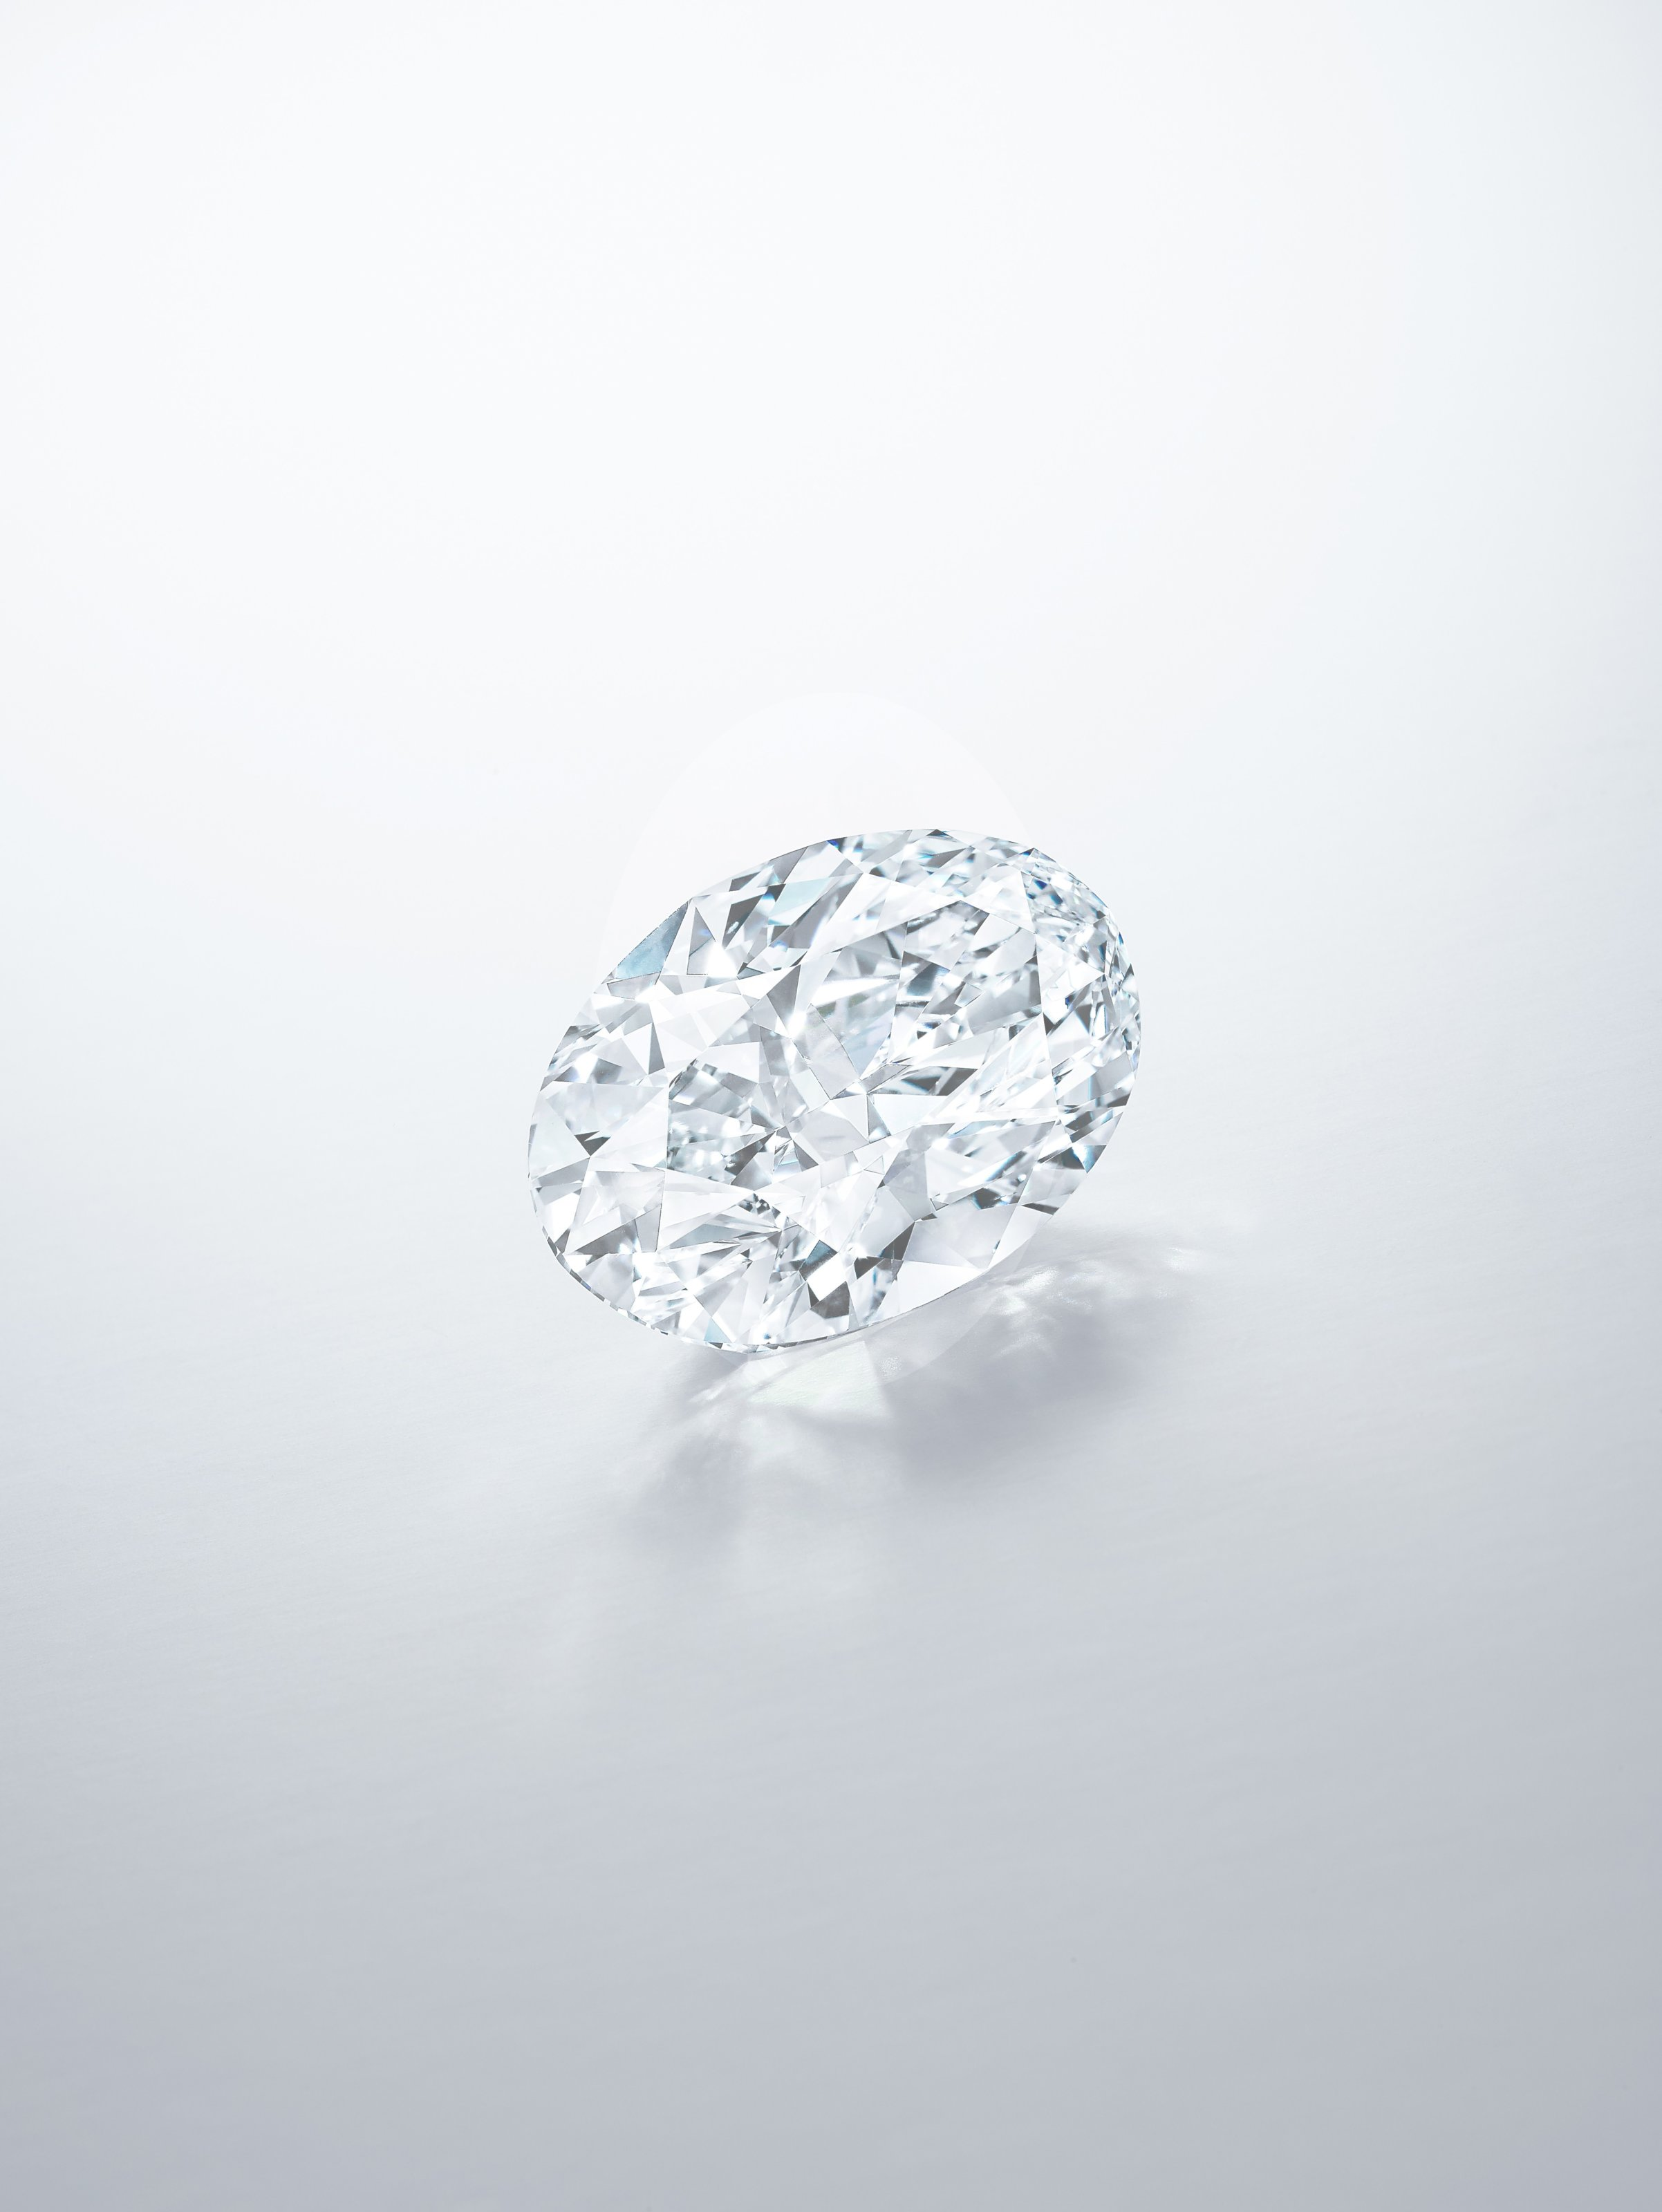 Oval cut 102 carat diamond from the Sotheby's jewelry auction showcasing brilliant diamond facets